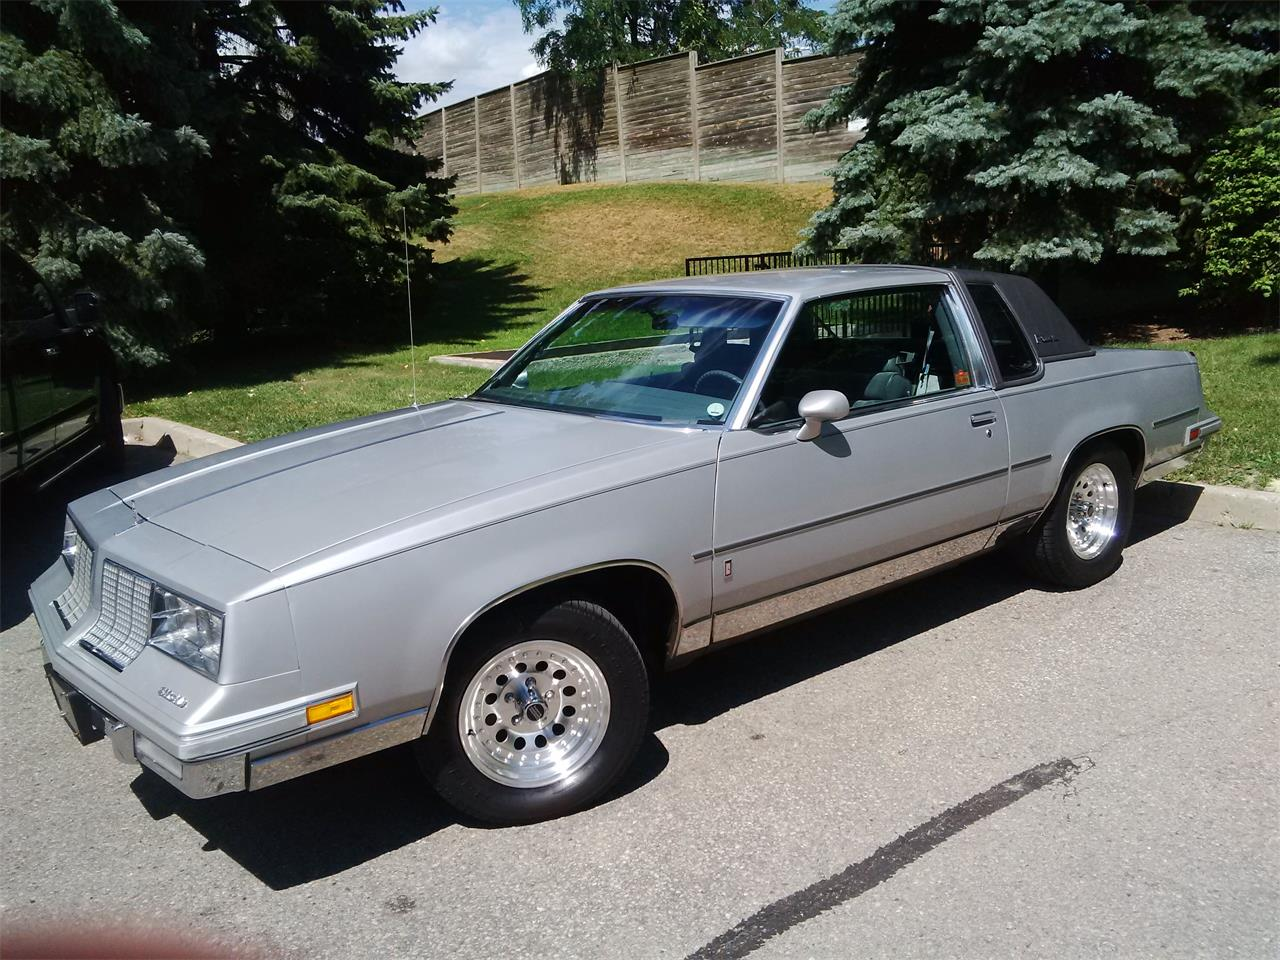 1985 Oldsmobile Cutlass Supreme For Sale | ClassicCars Com | CC-841563